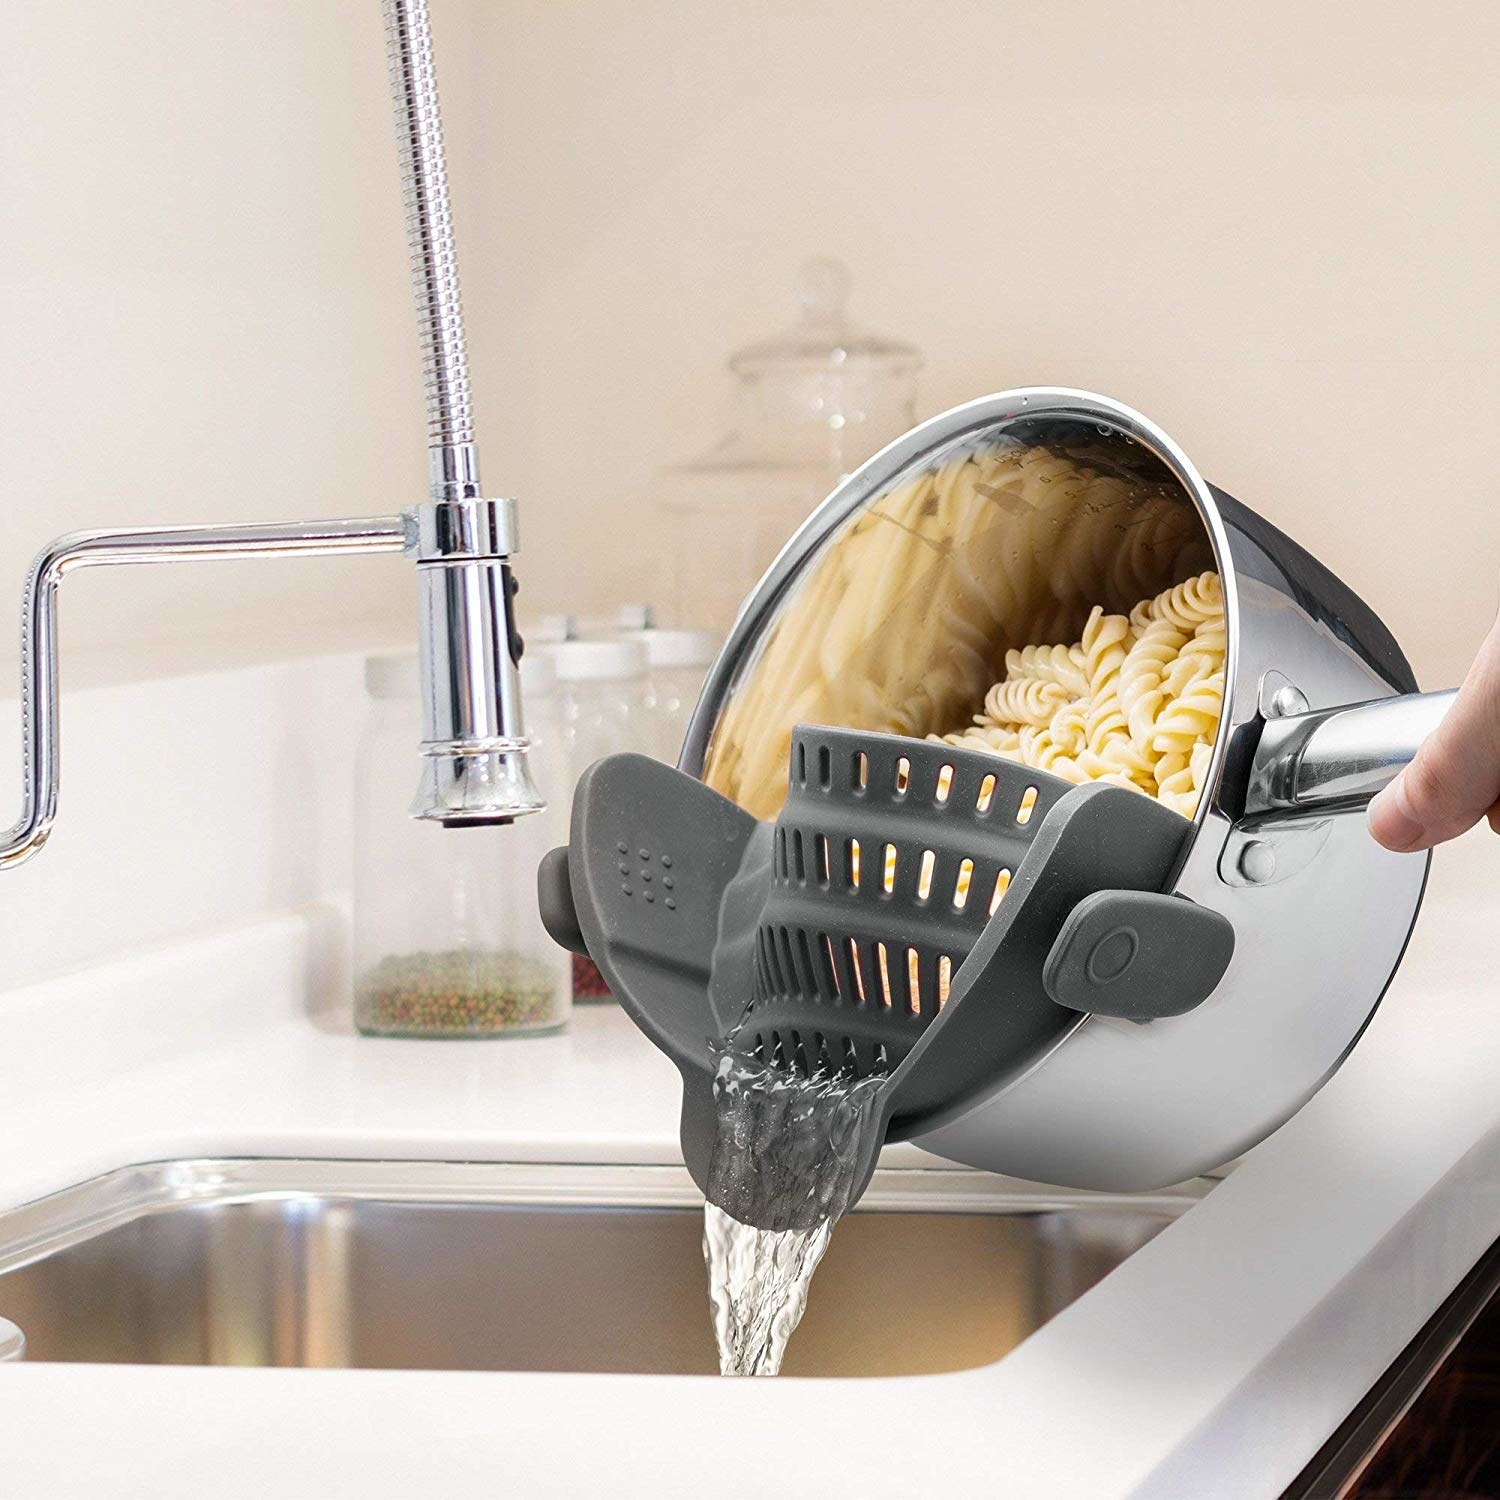 The half circle-shaped colander in grey attached to a pot filled with pasta, over a sink, straining the water out of the pot